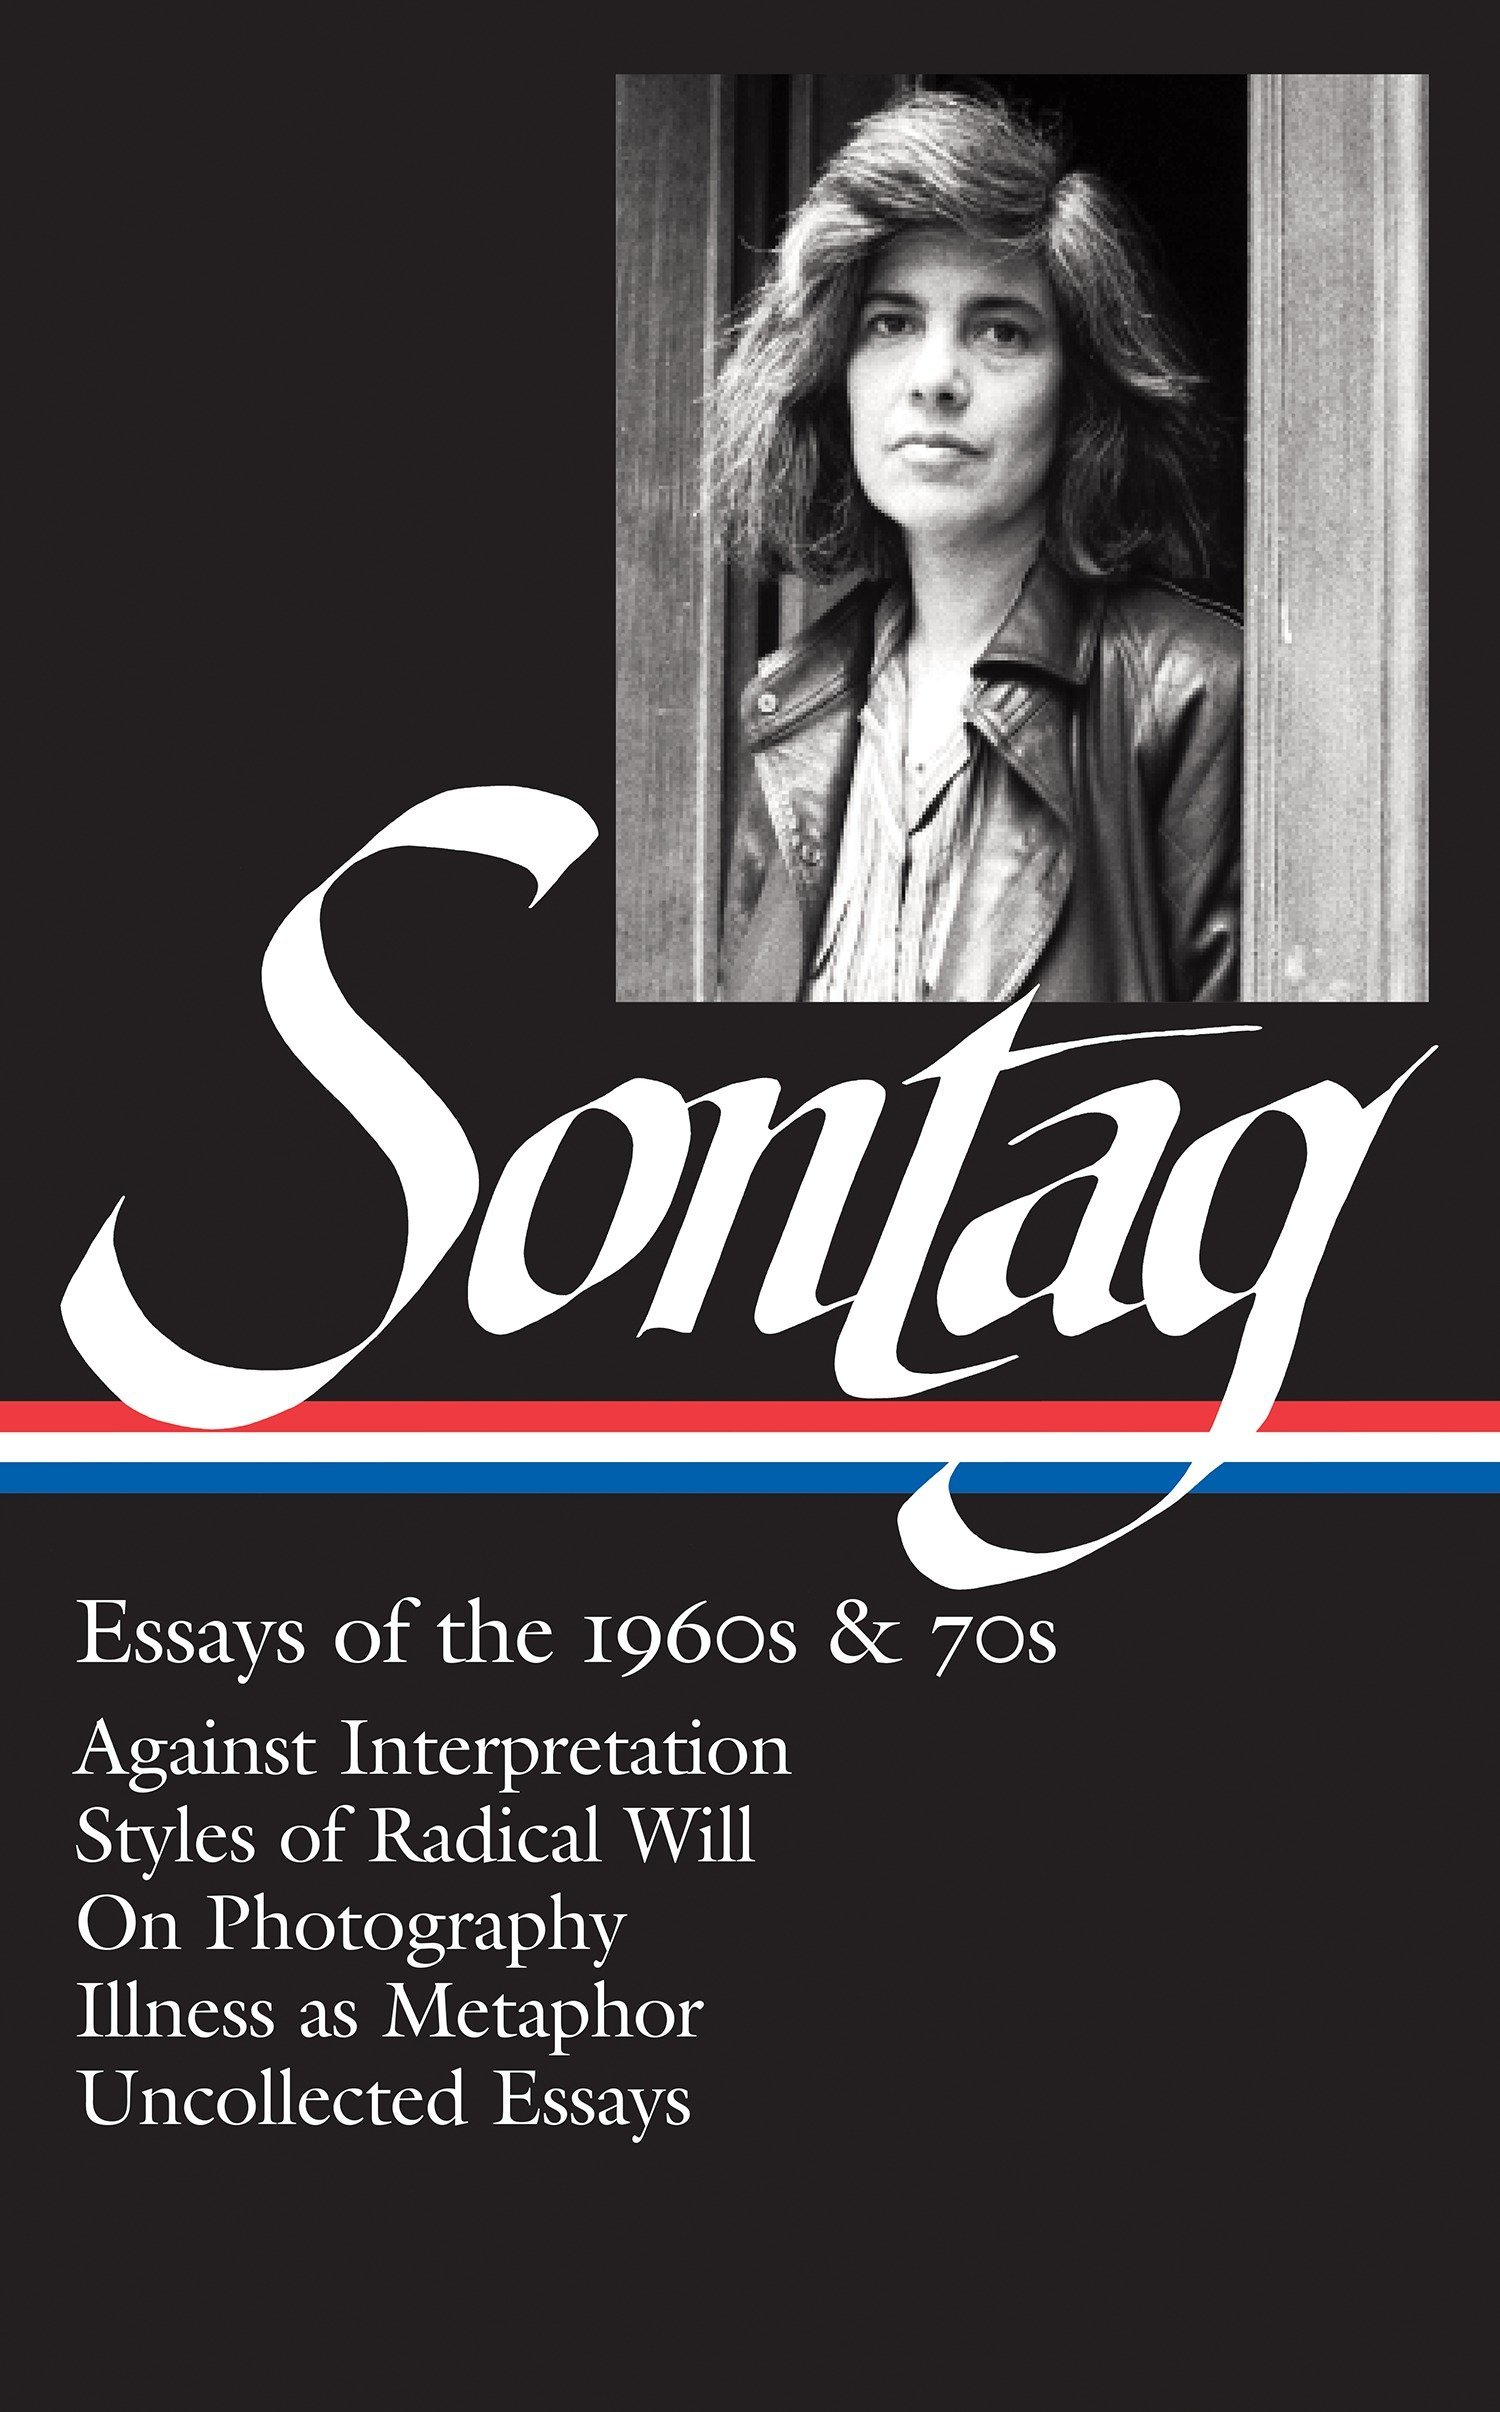 susan sontag essays of the 1960s 70s loa 246 against interpretation styles of radical will on photography illness as metaphor library of america susan sontag edition